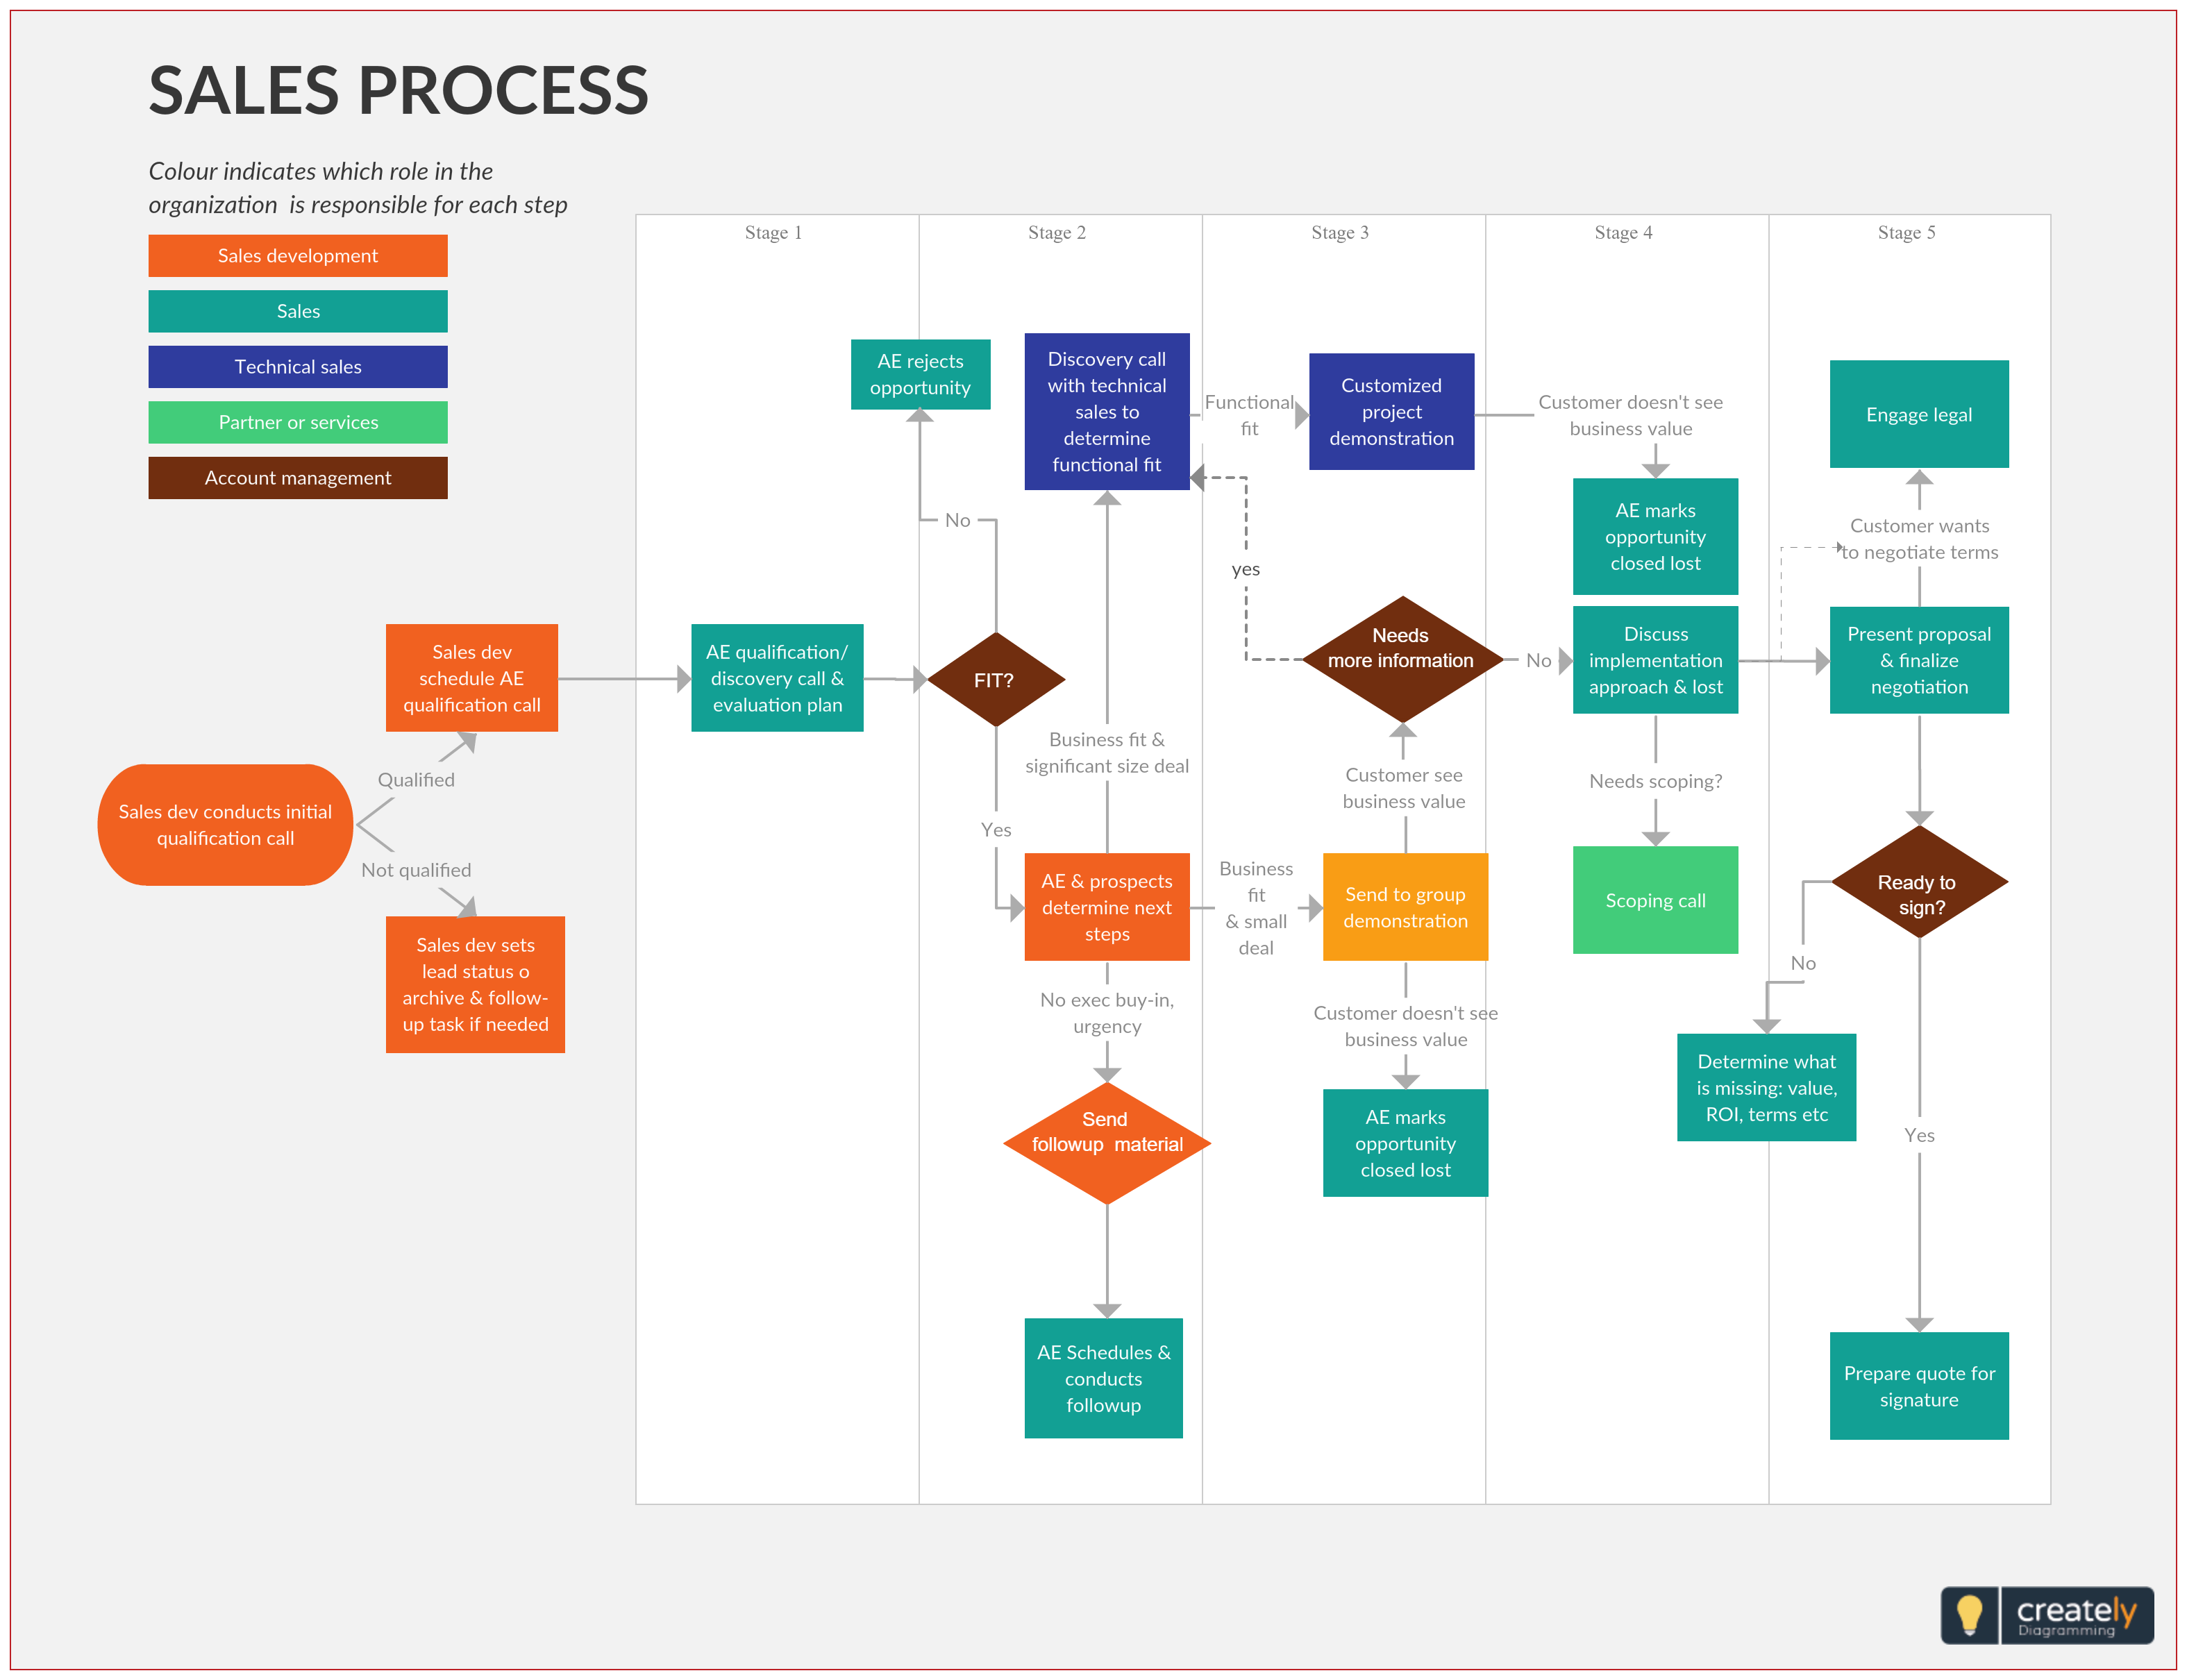 sales lead qualification process flowchart is step by step sales